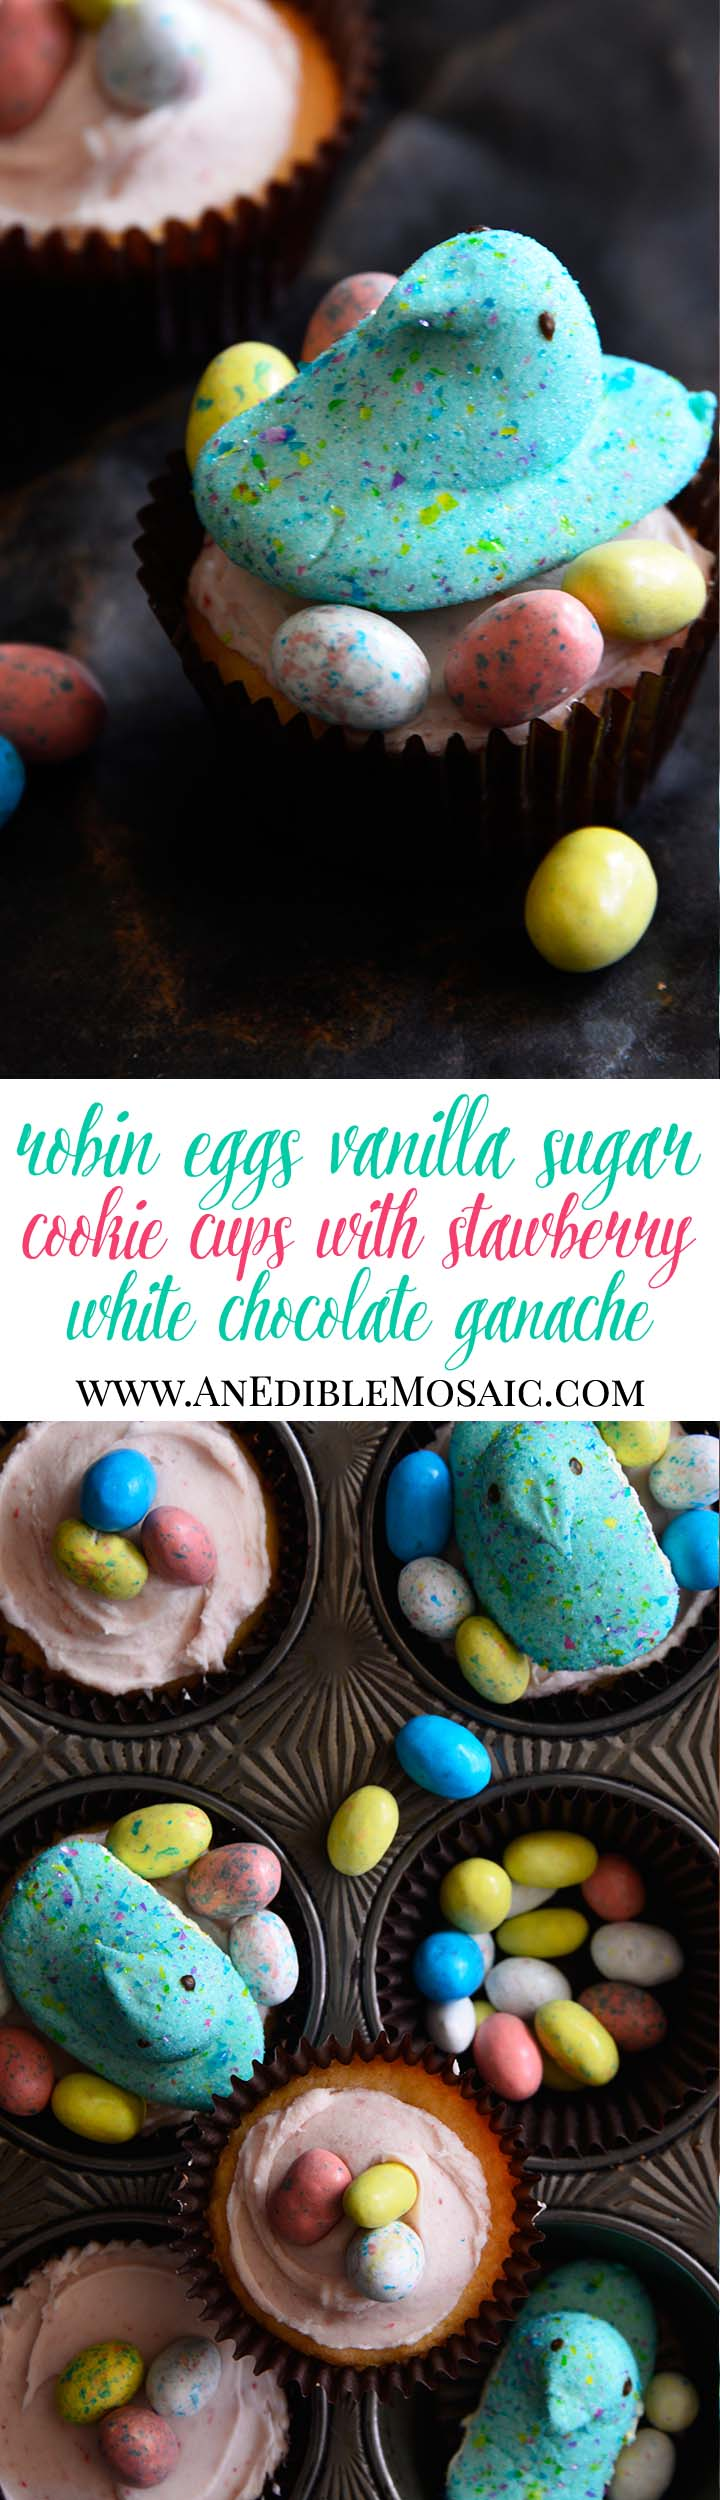 Robin Eggs Vanilla Sugar Cookie Cups with Strawberry White Chocolate Ganache Long Pin